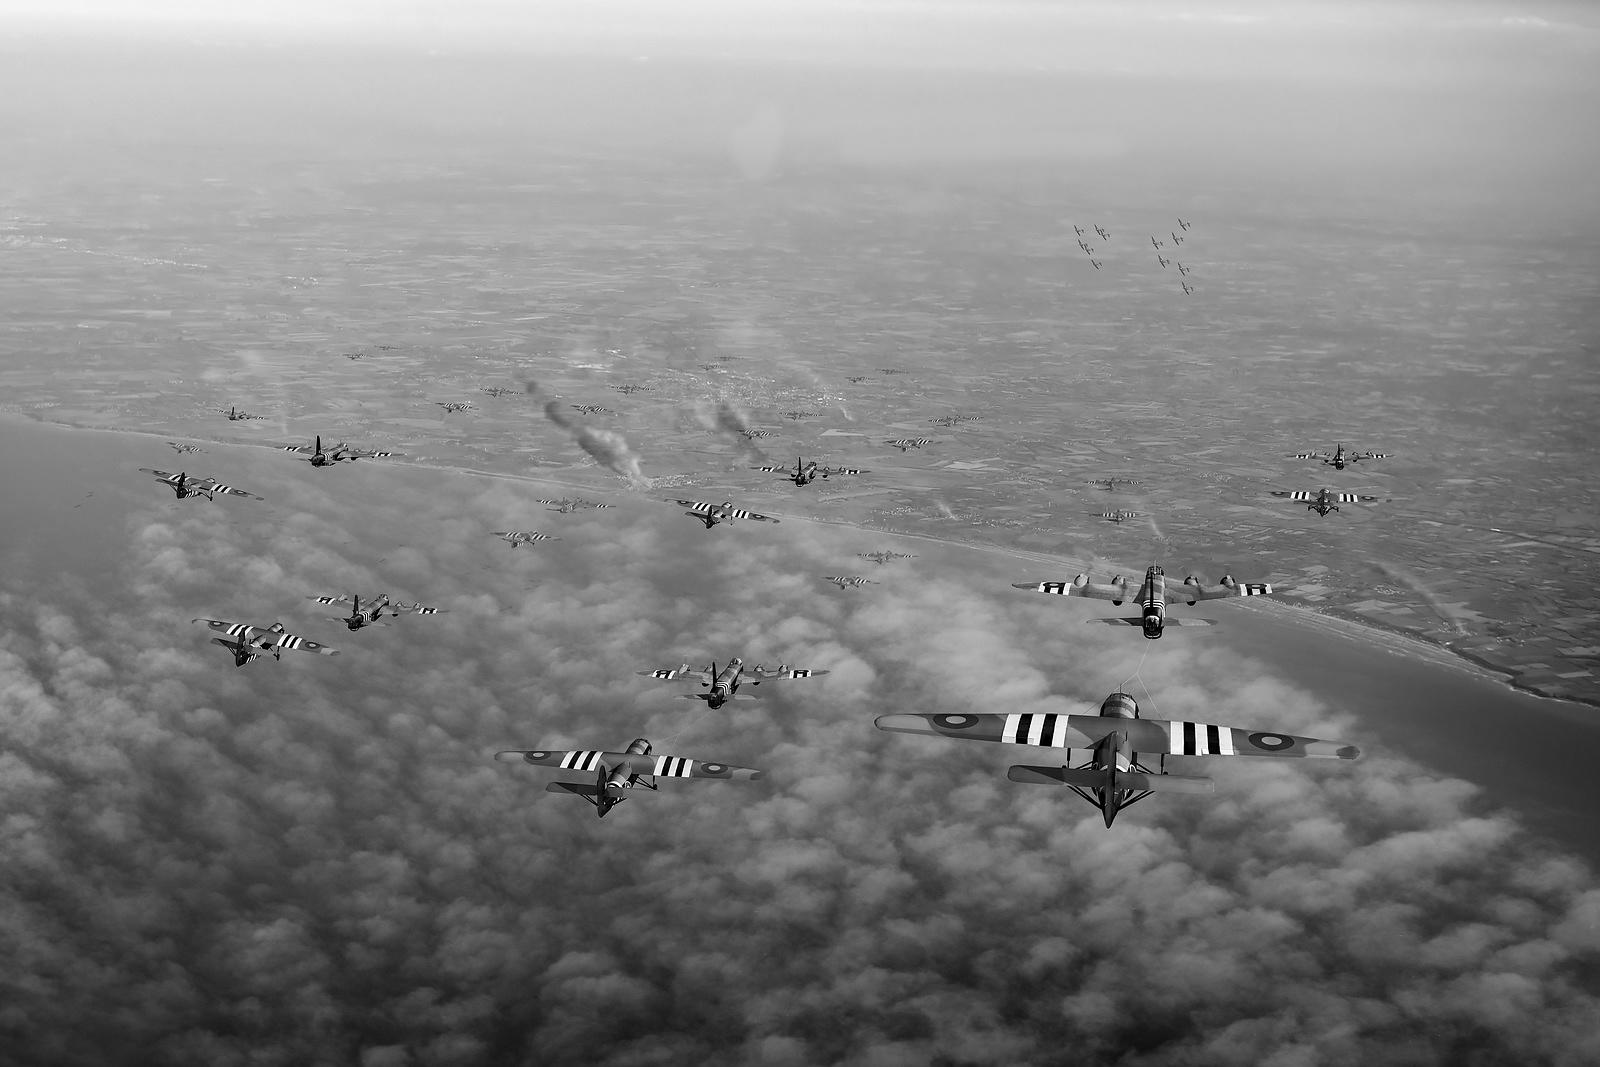 D-Day Stirlings and gliders B&W version